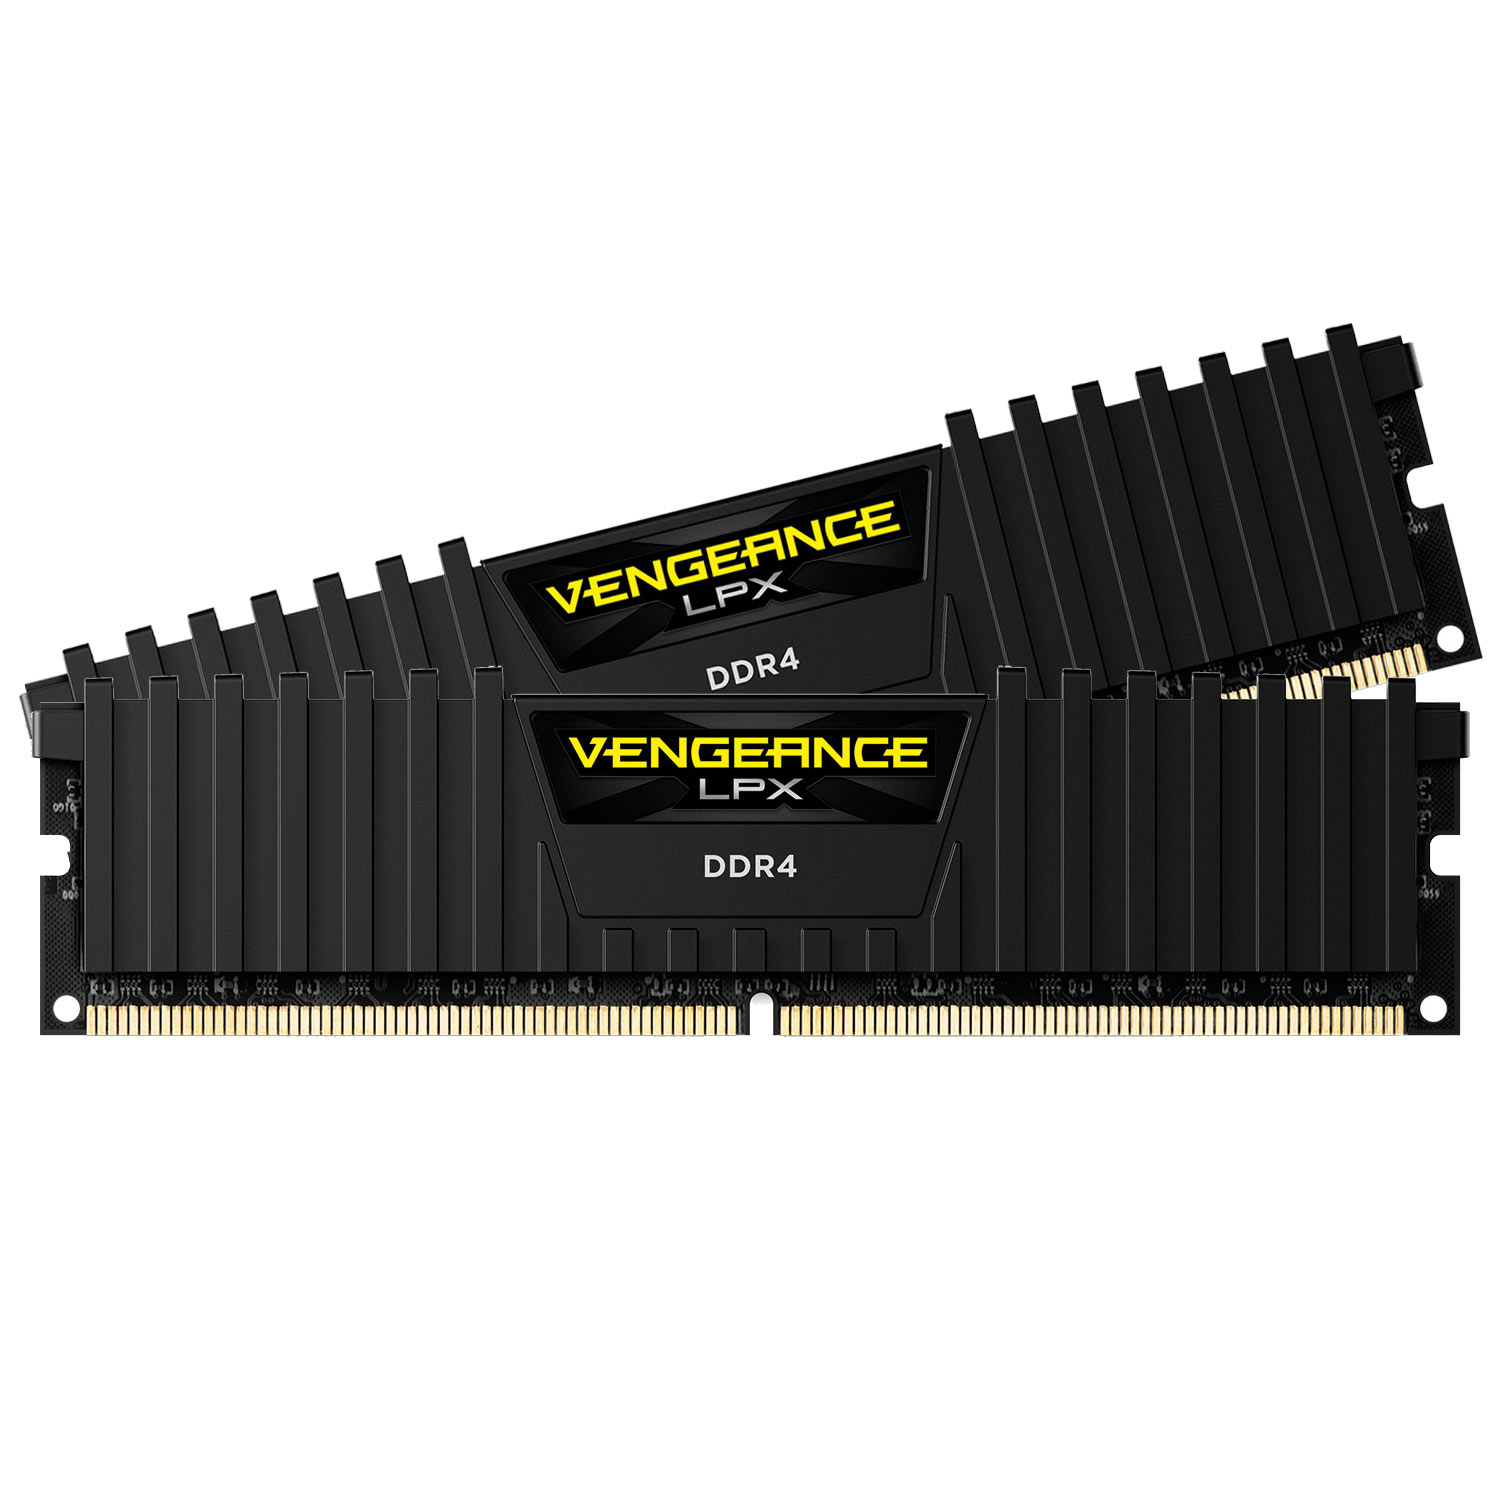 Mémoire PC Corsair Vengeance LPX Series Low Profile 16 Go (2x 8 Go) DDR4 2666 MHz CL16 Kit Dual Channel 2 barrettes de RAM DDR4 PC4-21300 - CMK16GX4M2A2666C16 (garantie à vie par Corsair)